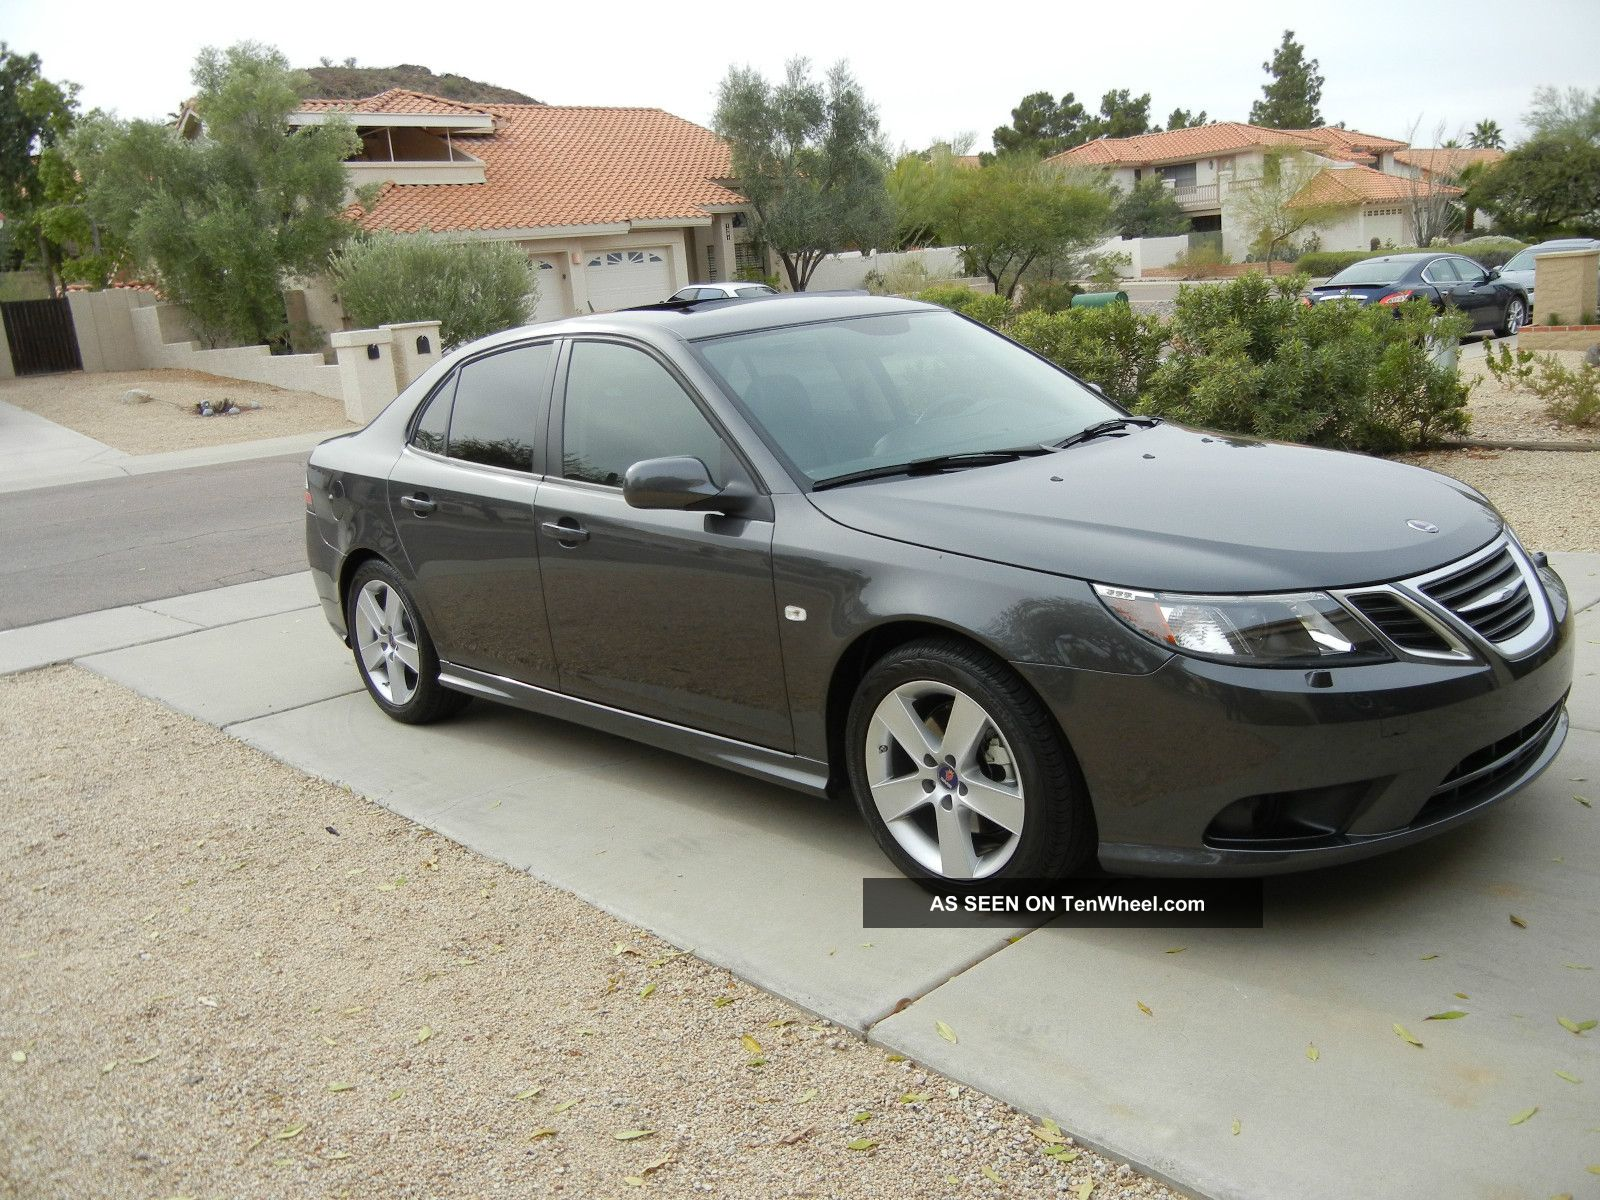 2011 saab 9 3 turbo4 aero sedan only 7k mi loaded and. Black Bedroom Furniture Sets. Home Design Ideas